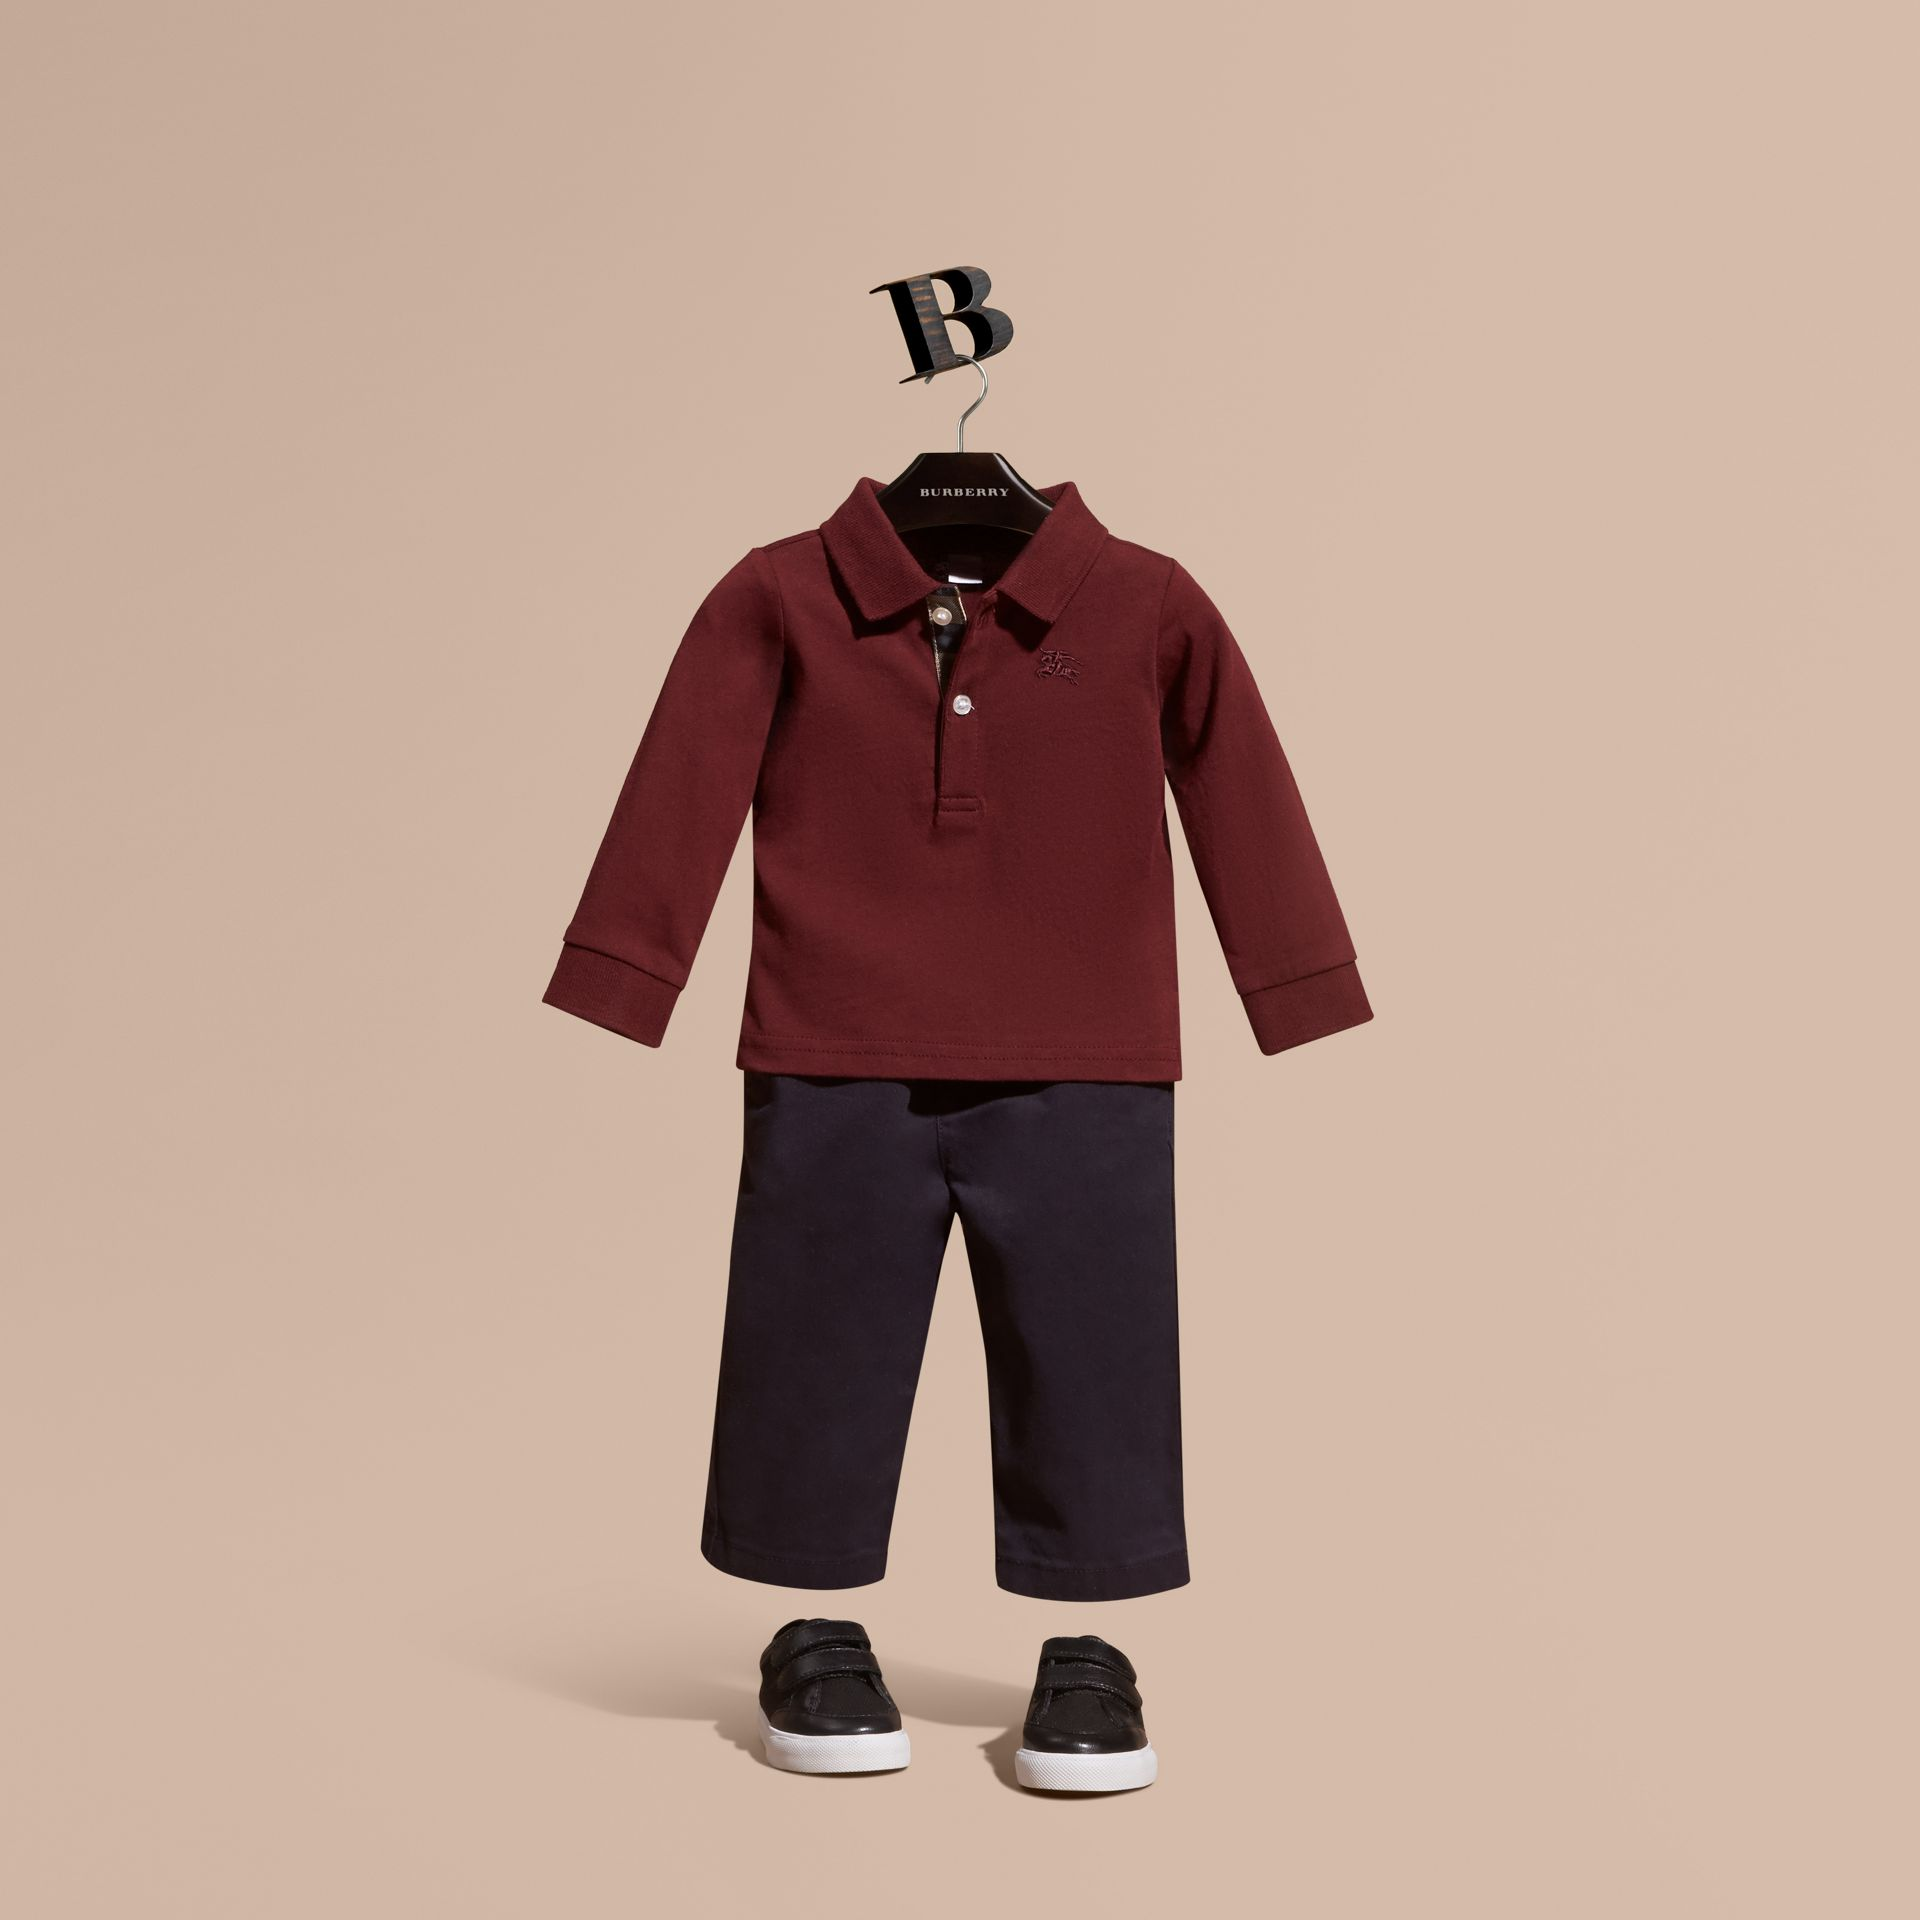 Burgundy red Check Trim Long-sleeved Cotton Polo Shirt Burgundy Red - gallery image 1